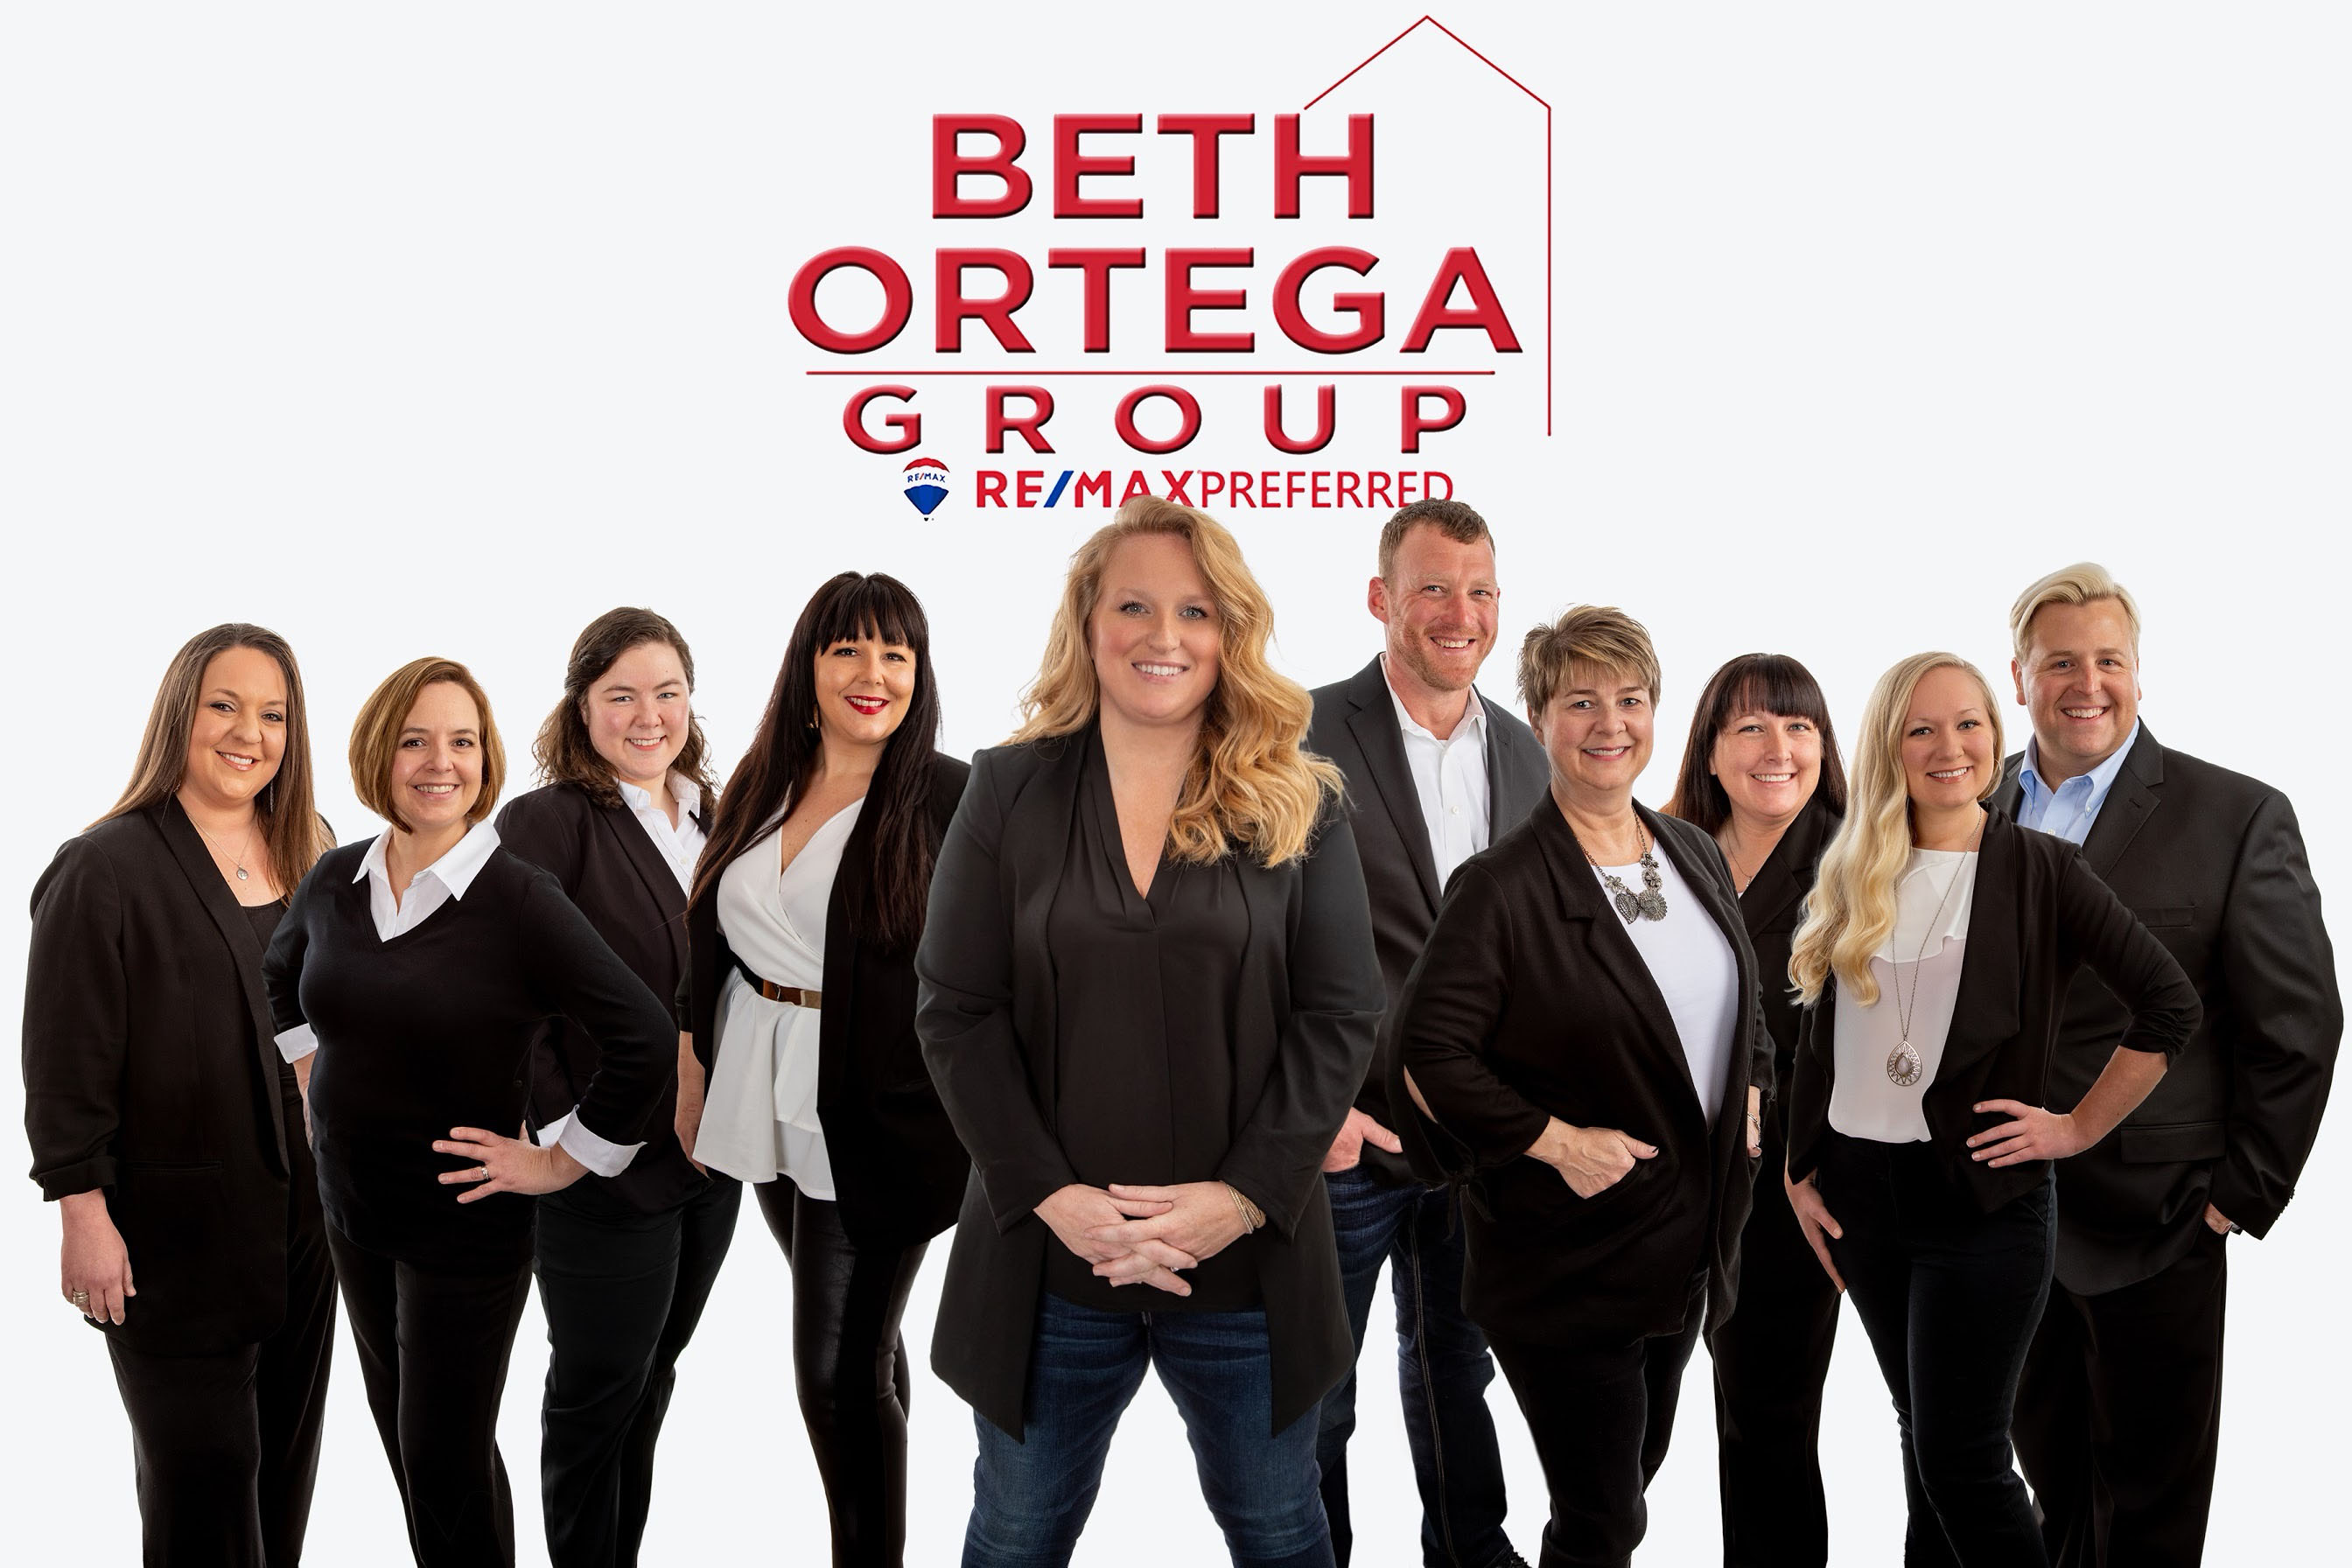 Beth Ortega Group